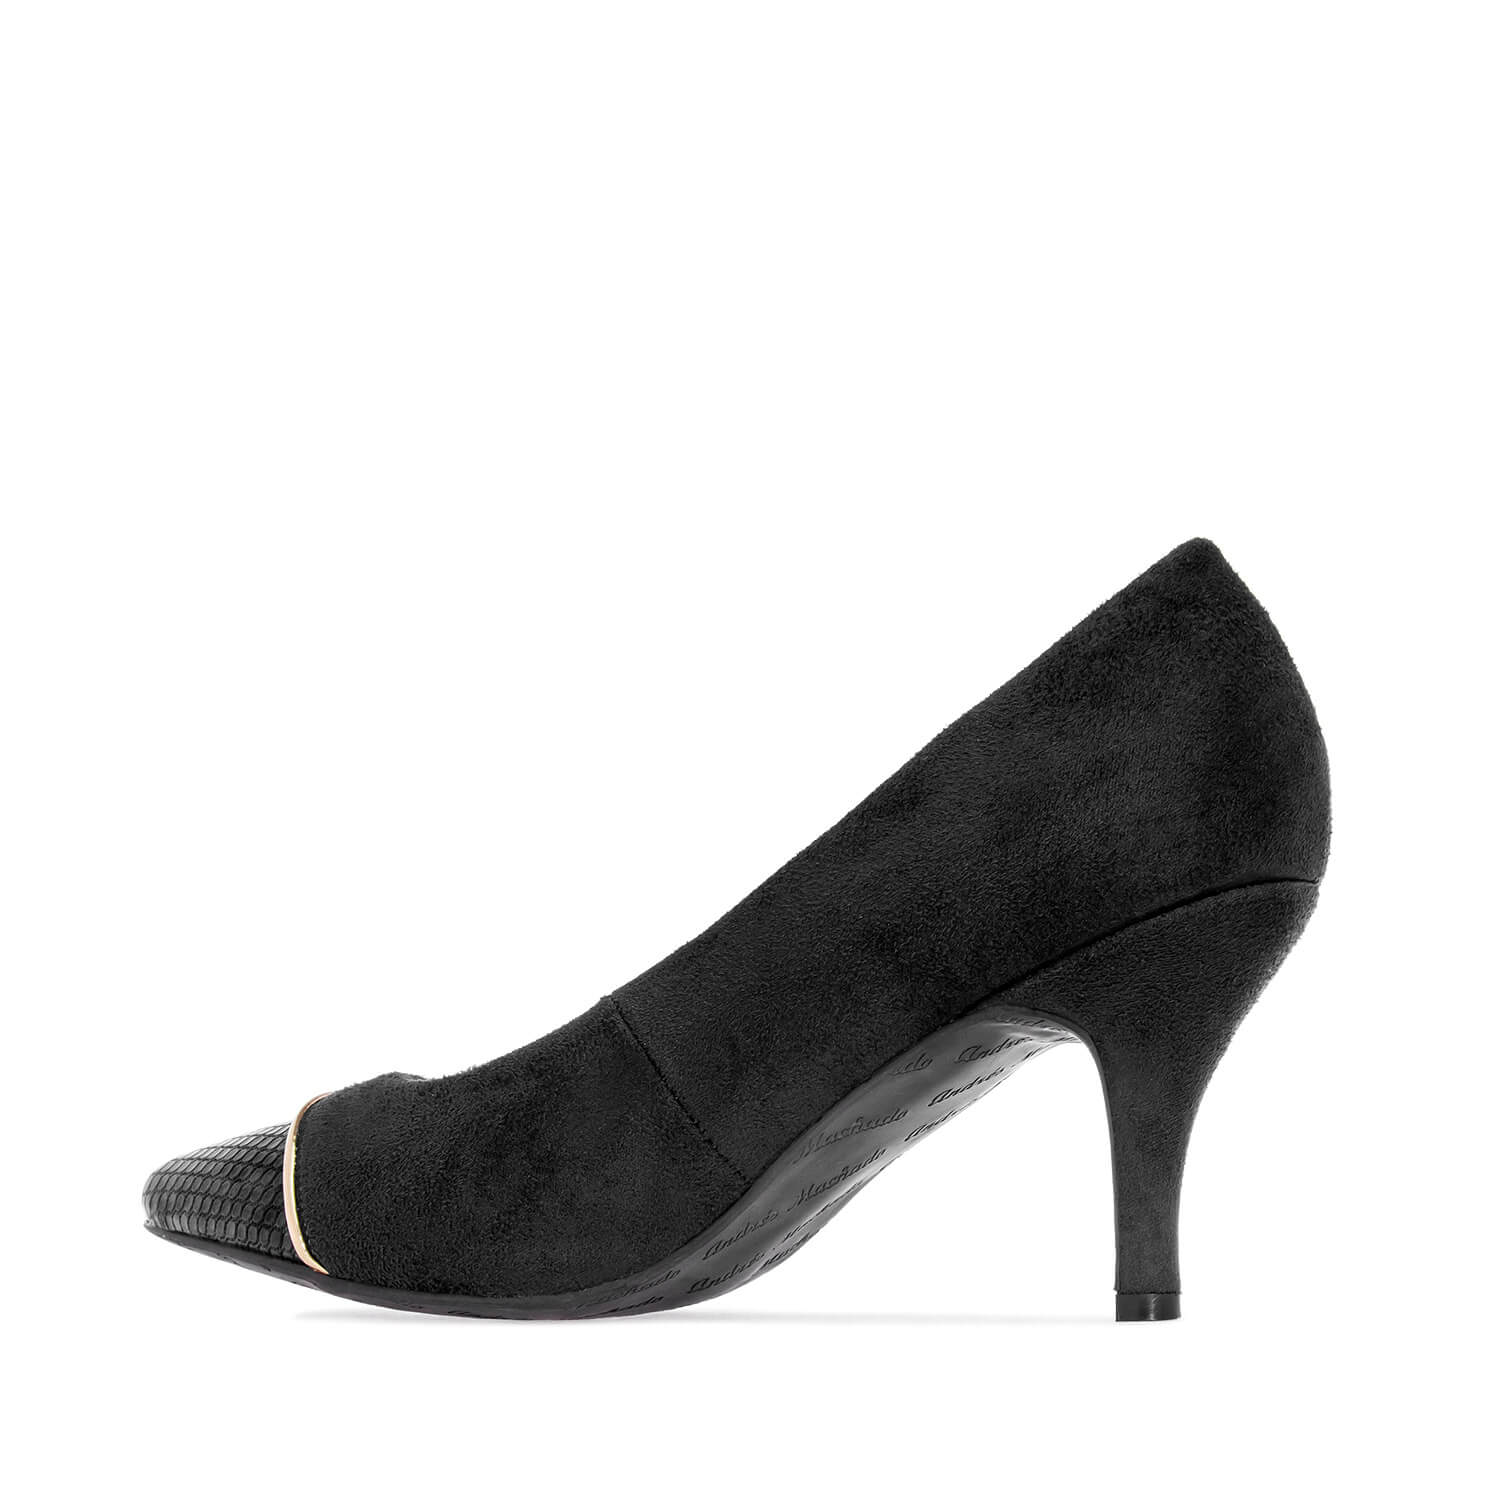 Pumps in Black faux Suede